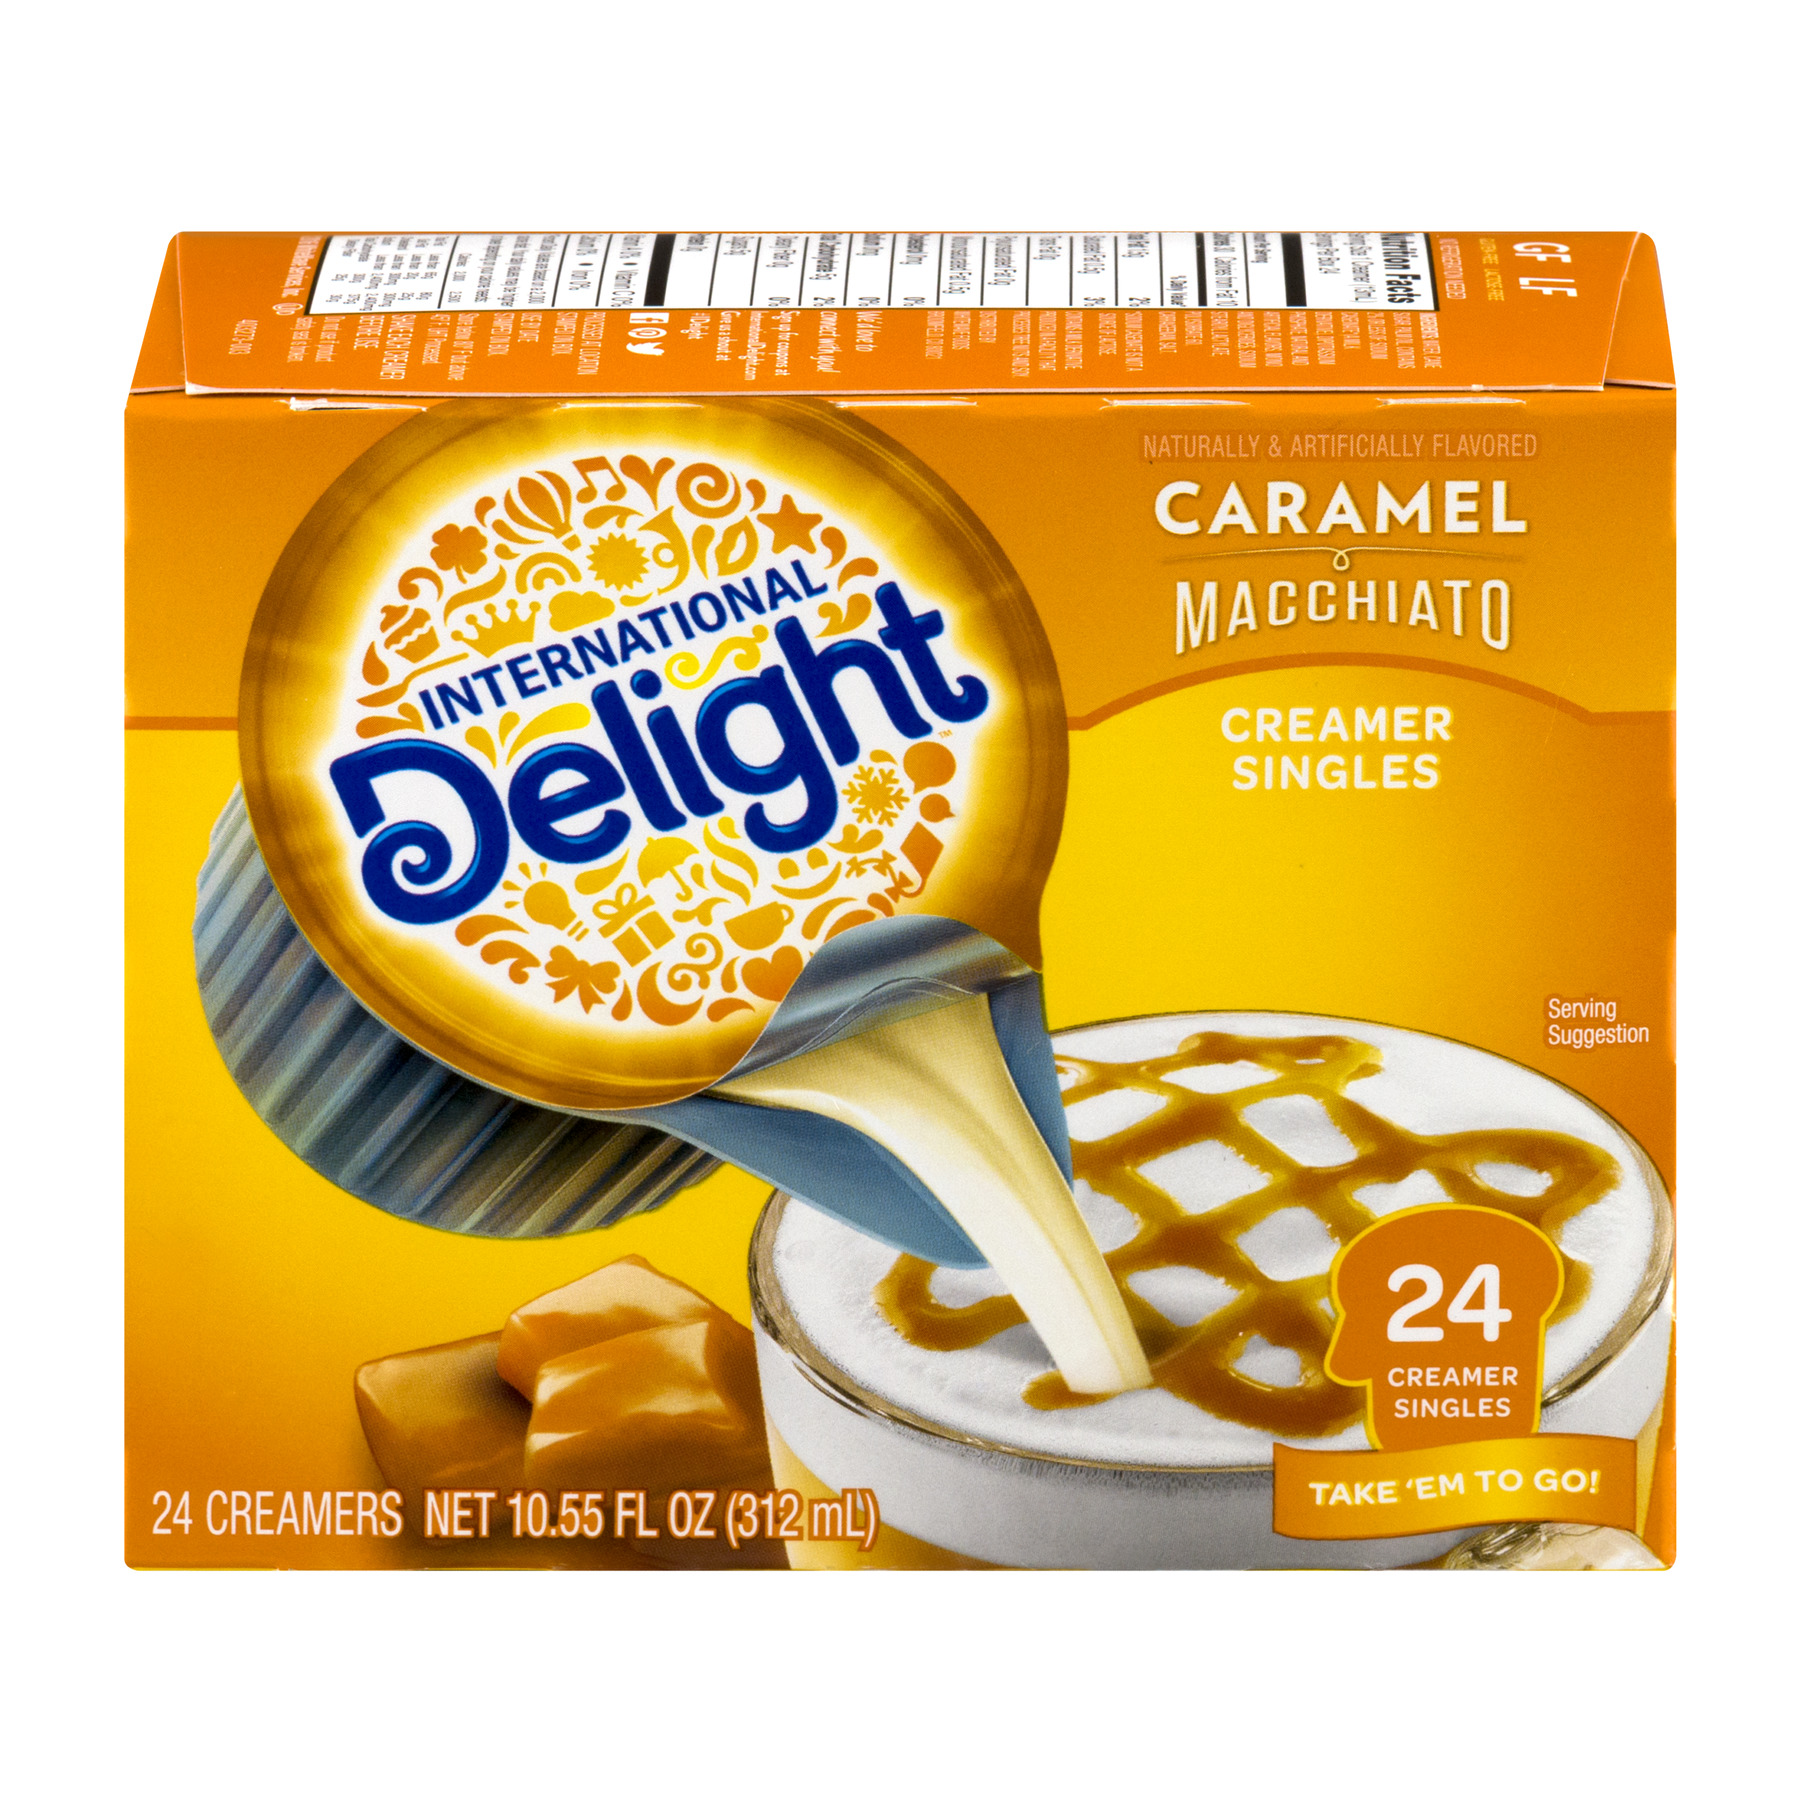 International Delight Caramel Macchiato Non-Dairy Coffee Creamer Singles 24 ct. Box